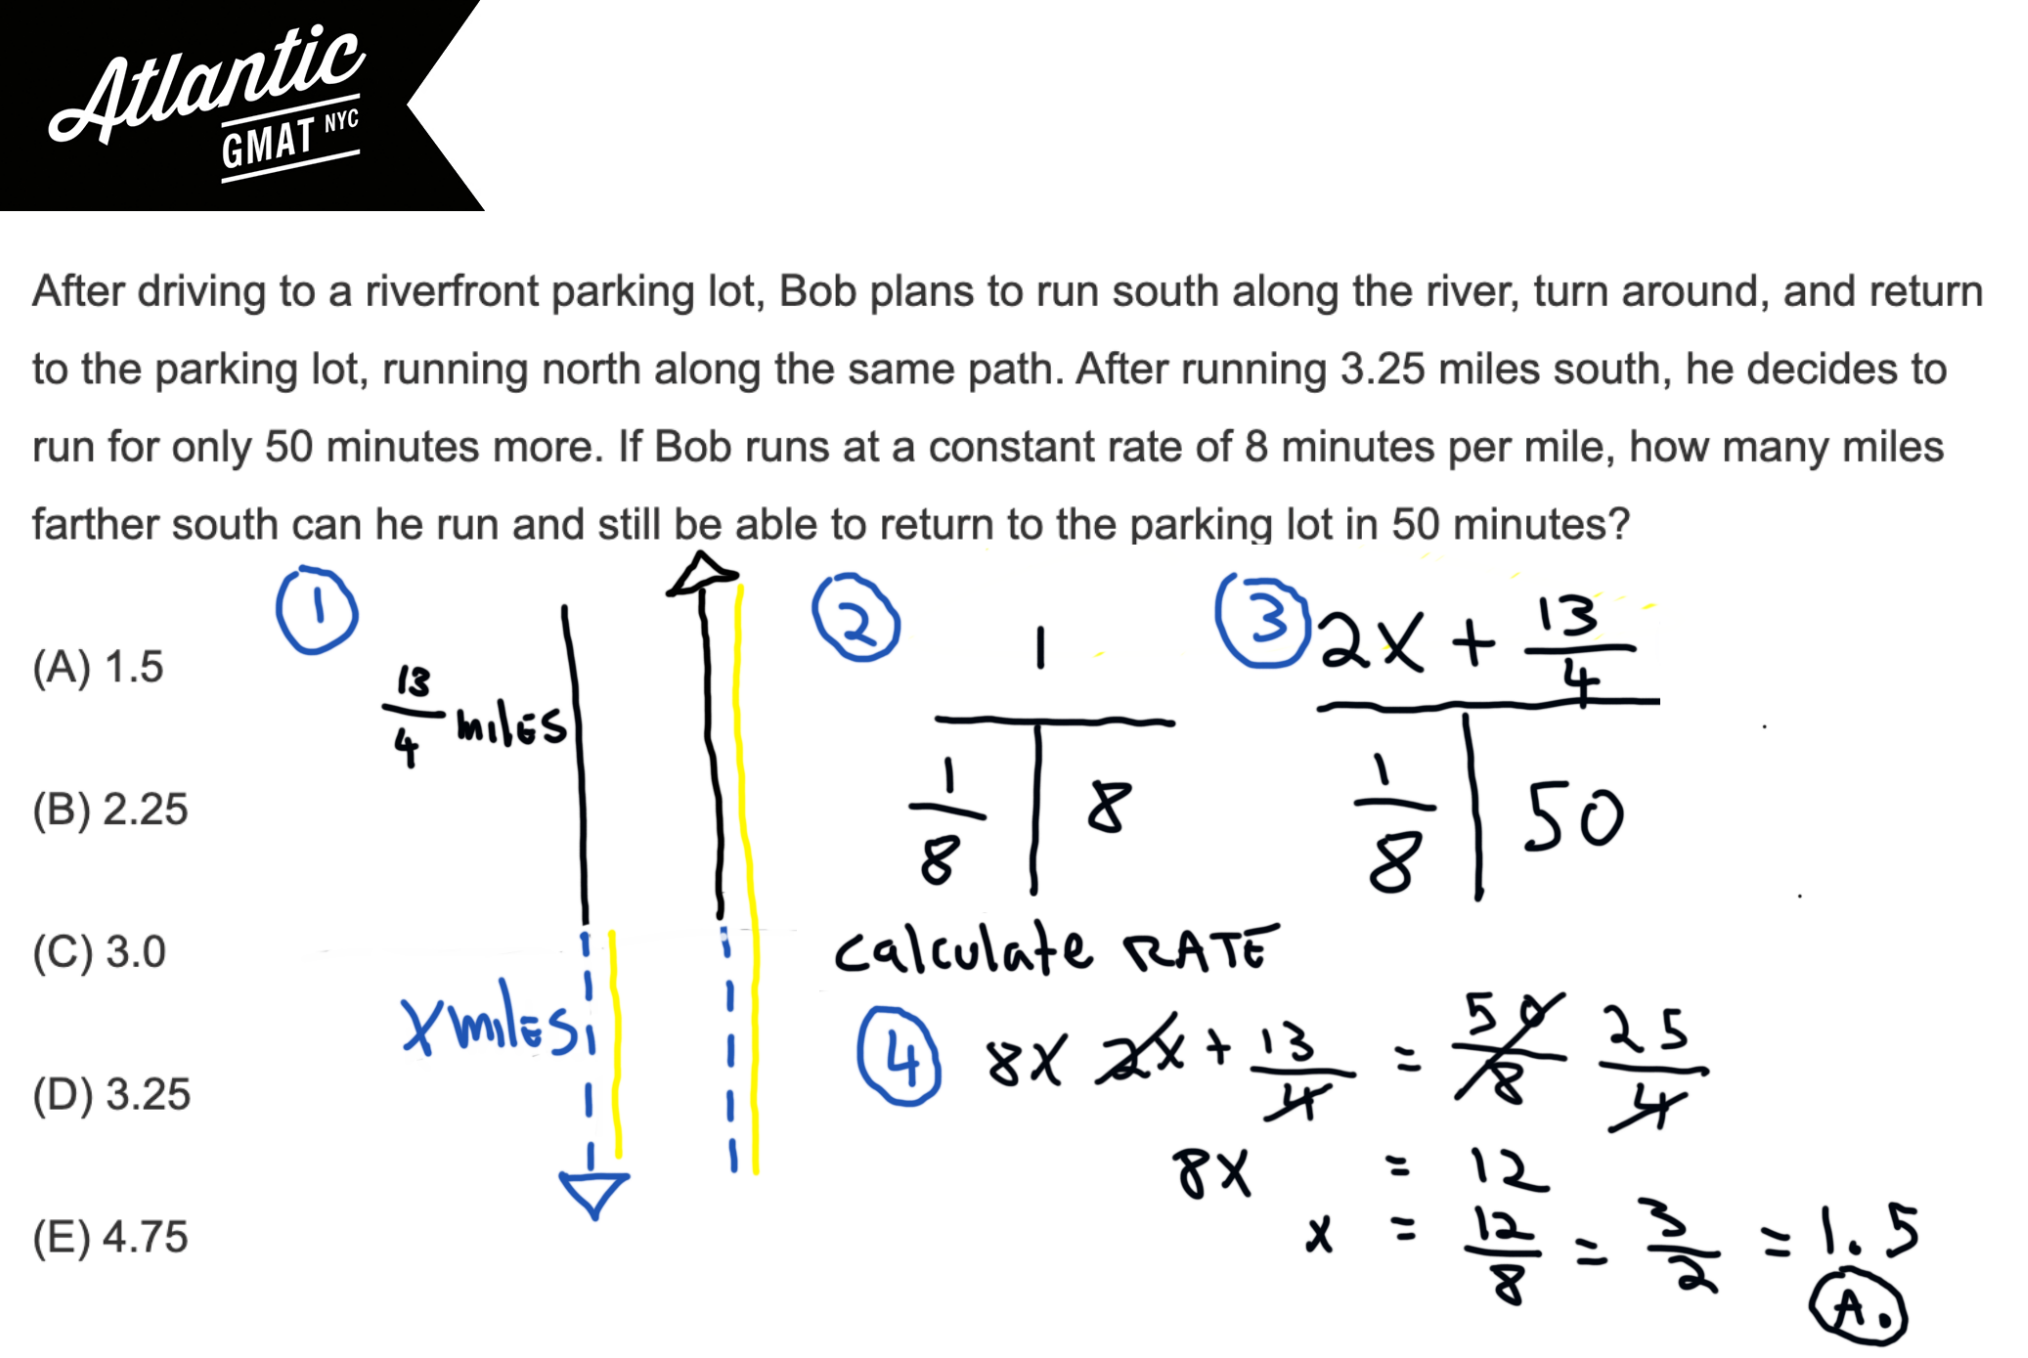 After driving to a riverfront parking lot, Bob plans to run south along the river GMAT Explanation Complete Daigram